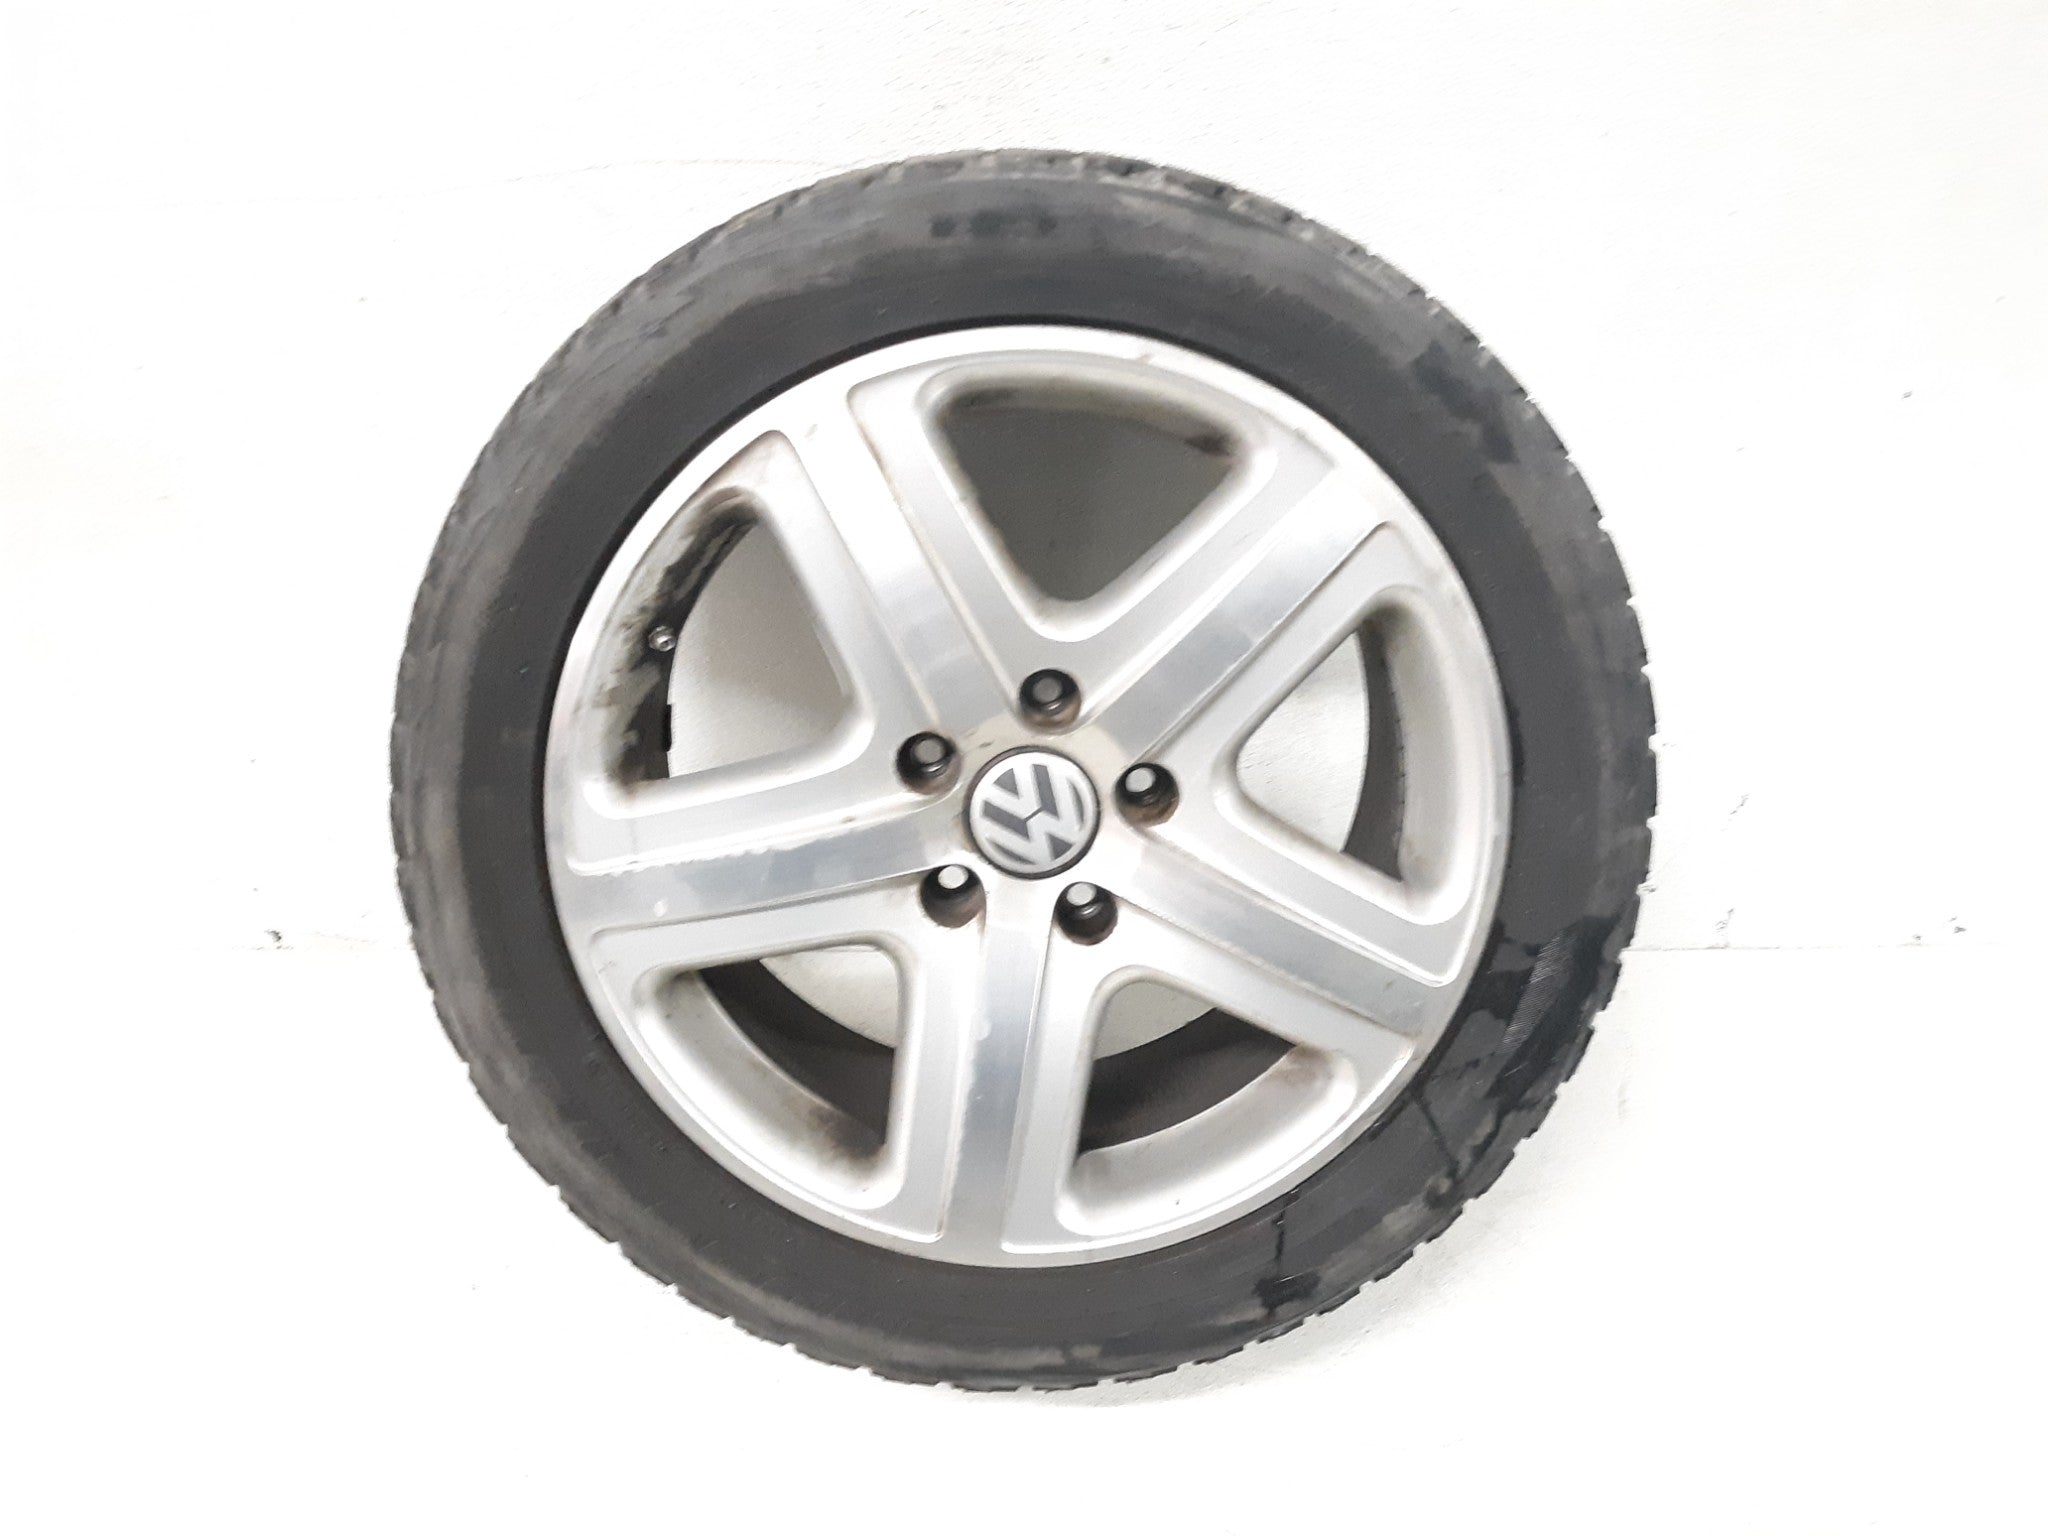 "2004-2010 WV TOUAREG V8 /19""RIM WHEEL & TIRE 275/45/R19 OEM 5.2 /32nd 7L6601025"